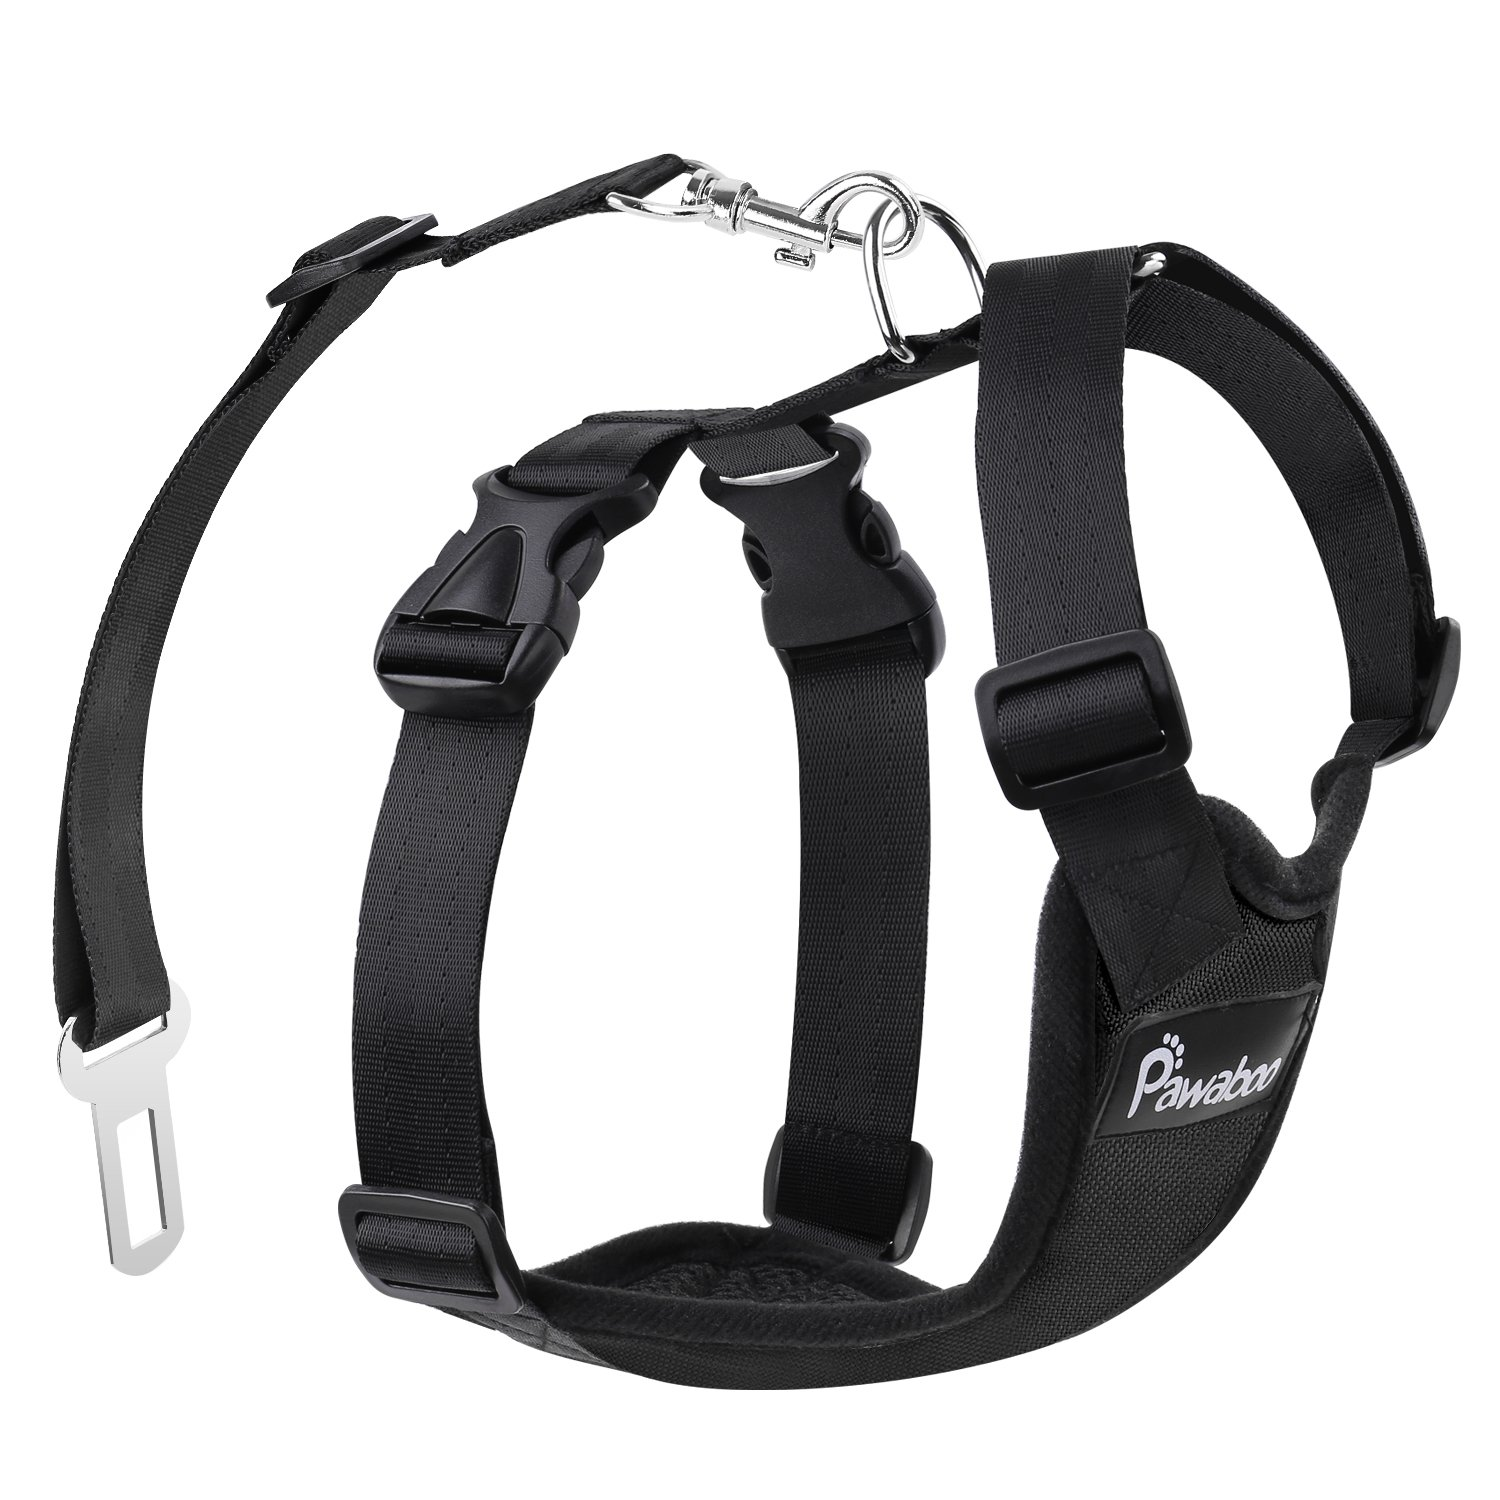 PAWABOO Dog Safety Harness}